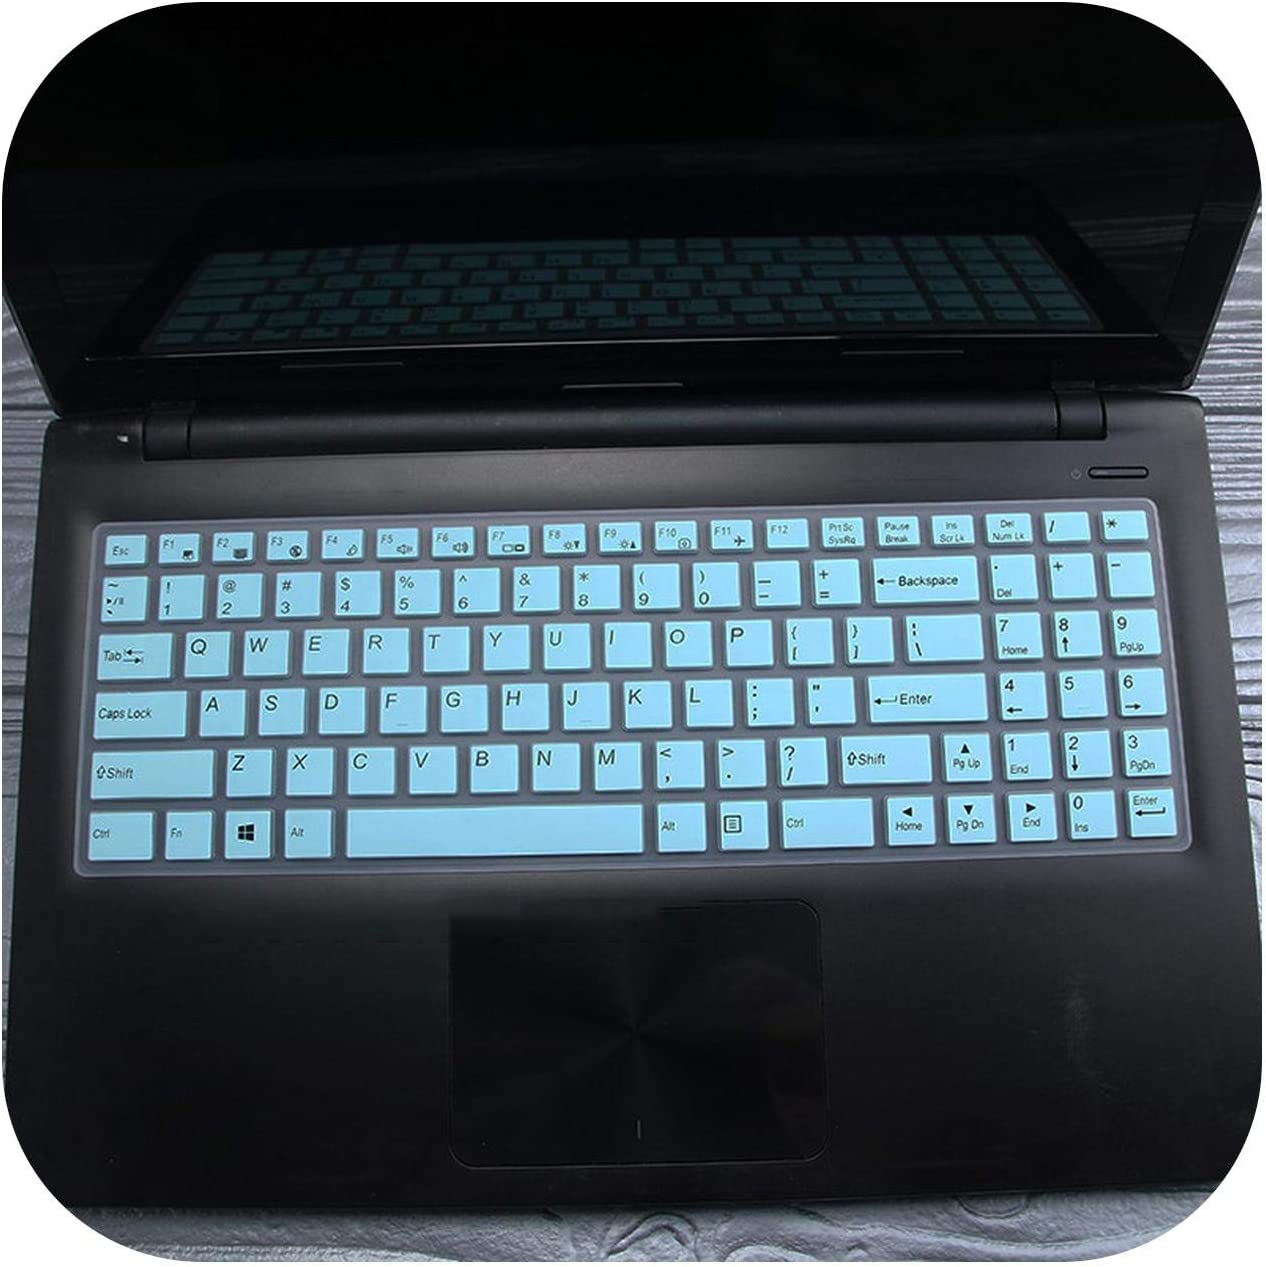 Pink Silicone Keyboard Cover Protector Skin for 15.6 for Lenovo Ideapad 100 Ideapad 100 15 100 15Ibd B50 10 B50 50 80S2 Laptop